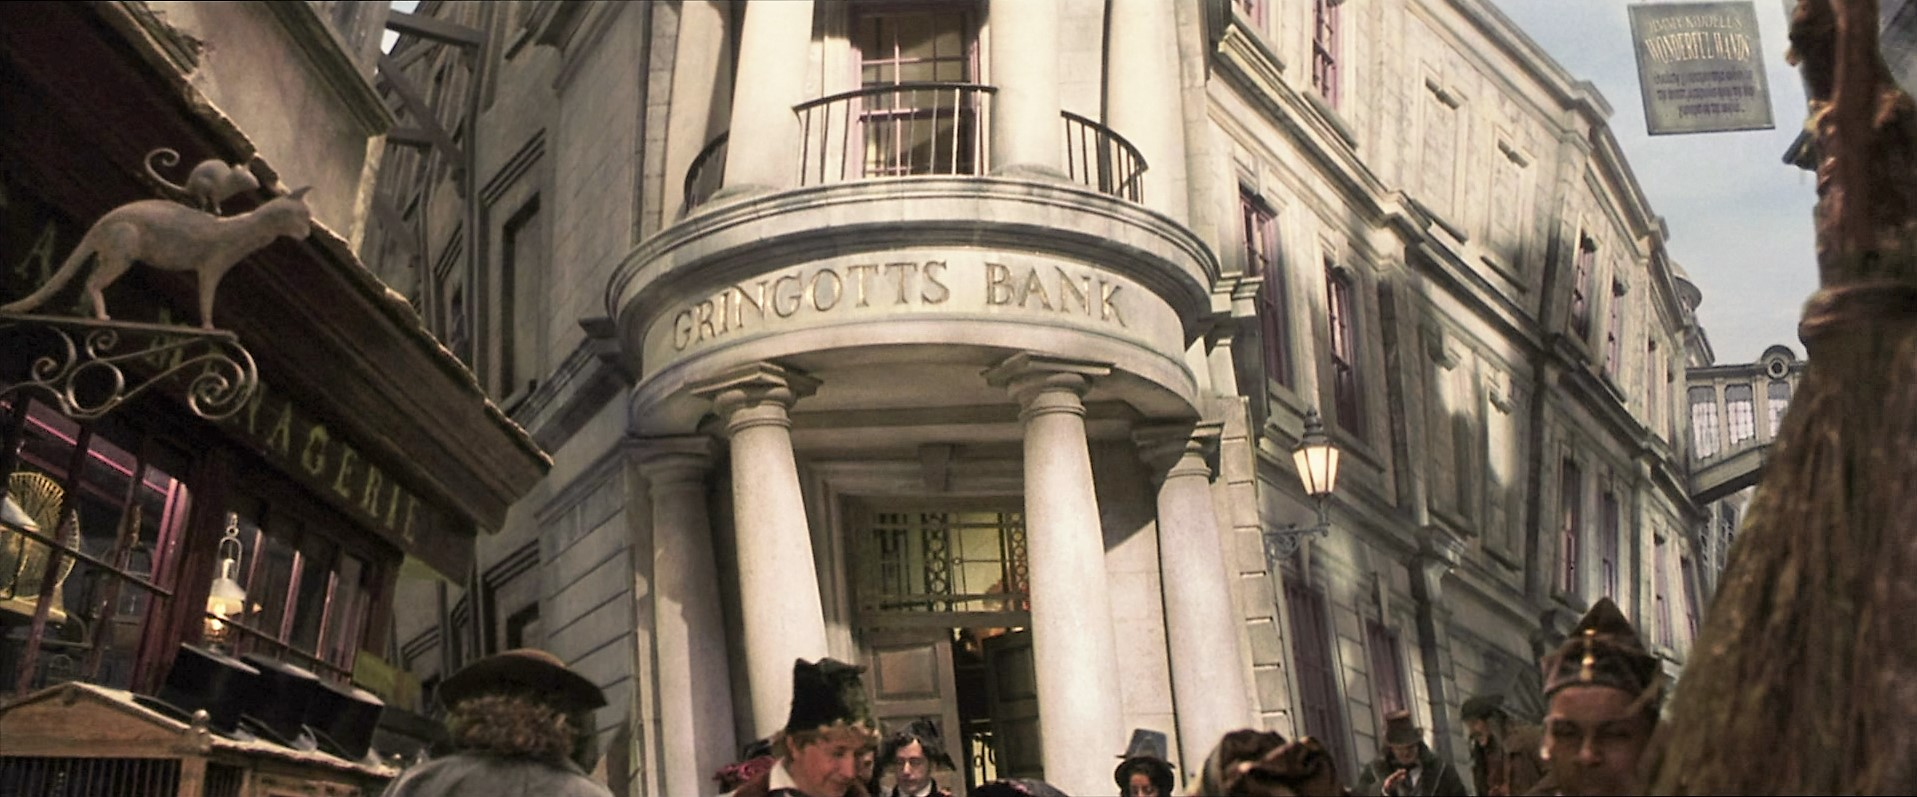 http://images.wikia.com/harrypotter/images/e/e9/Gringotts_bank.jpg